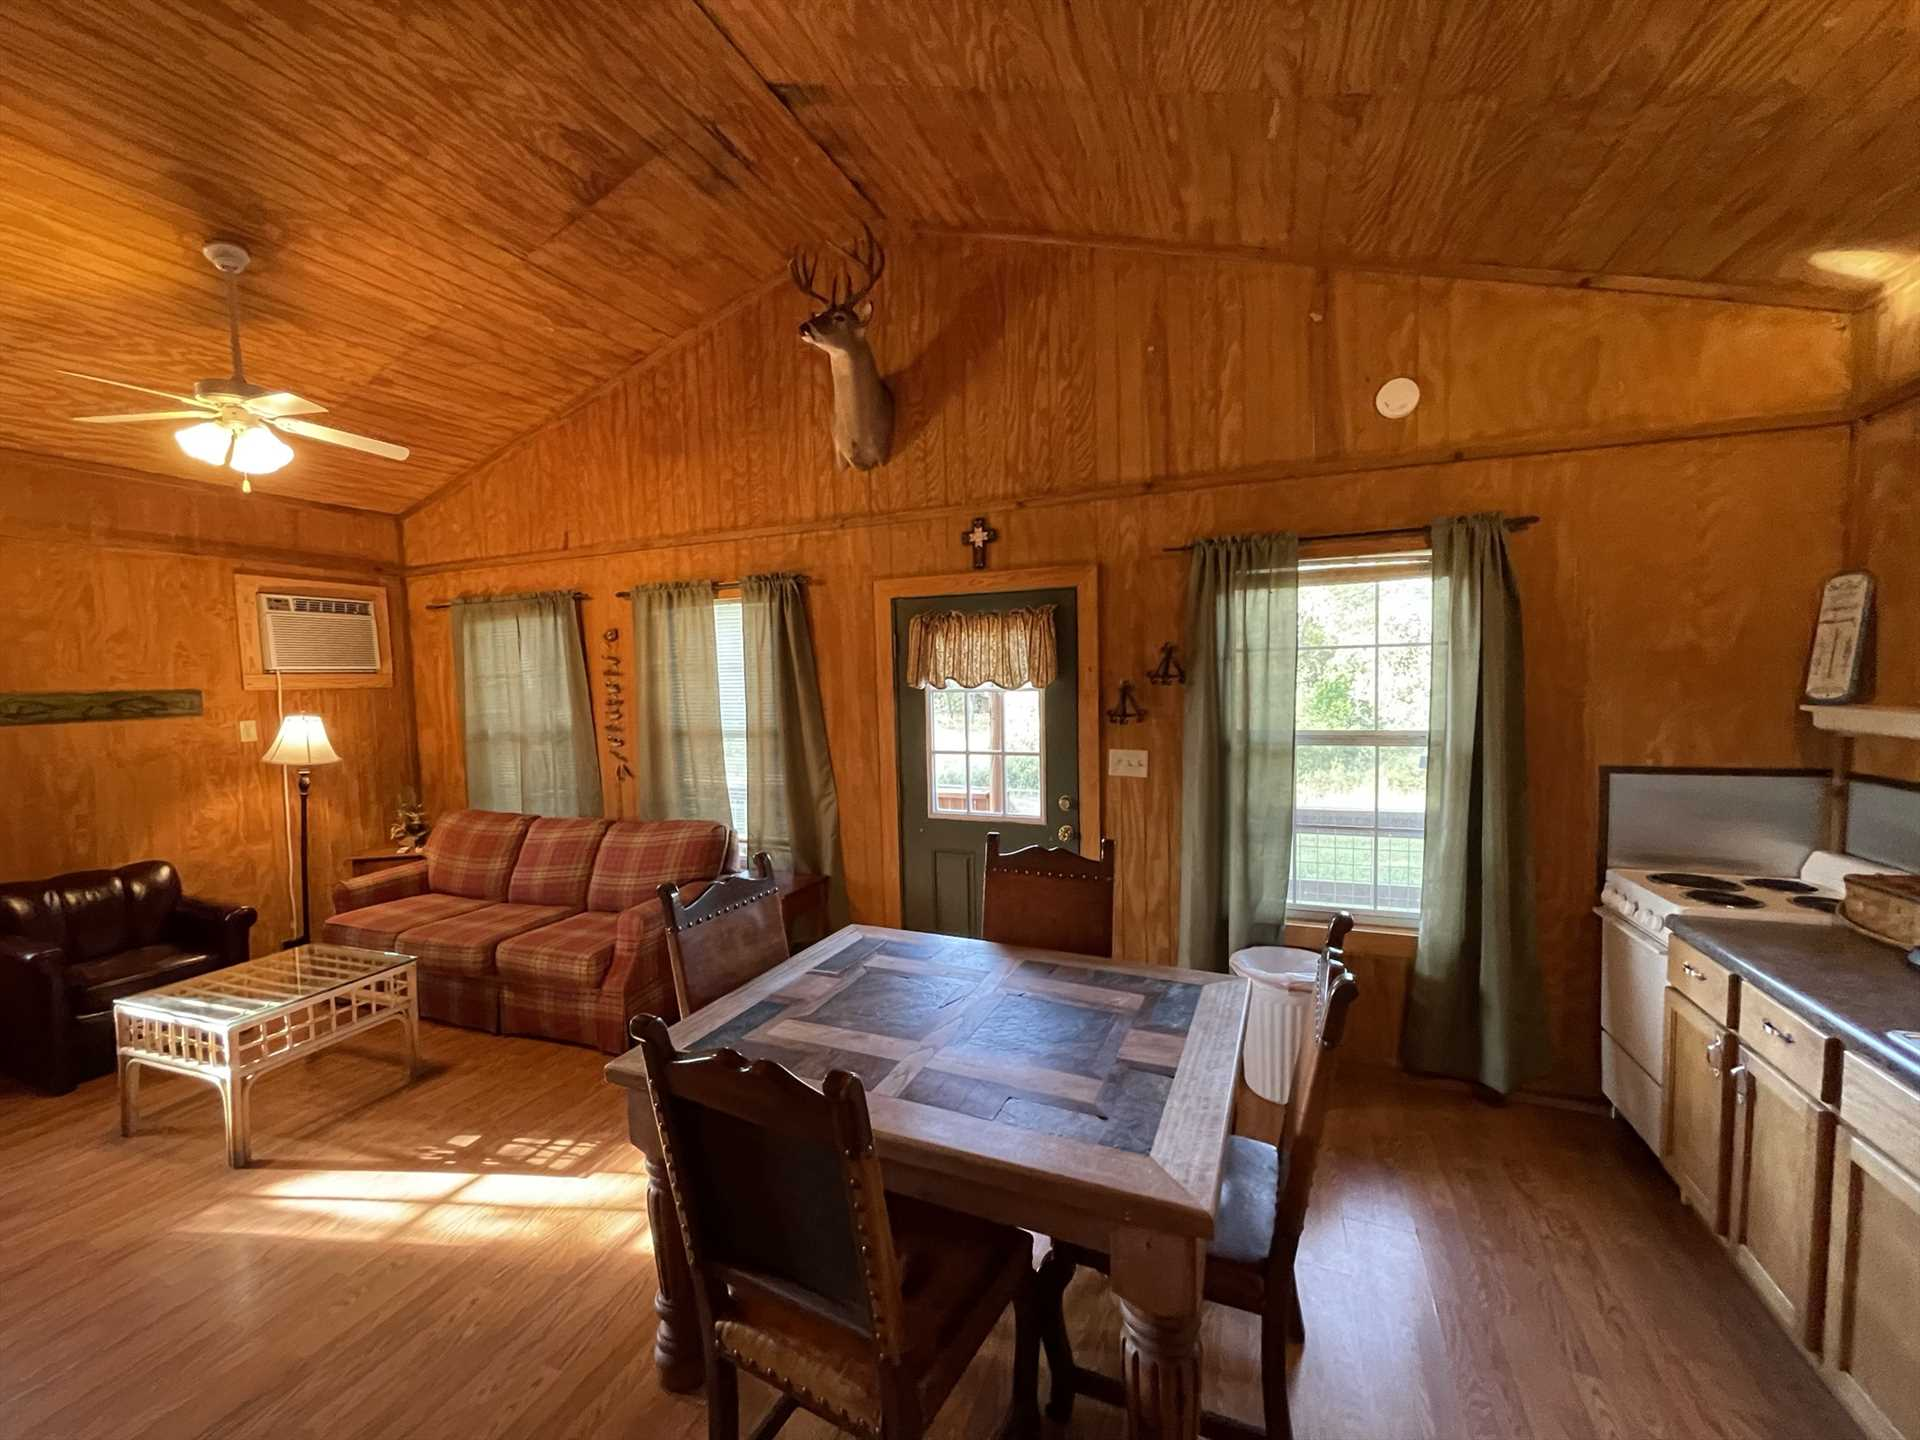 The wide-open floor plan of the Gone Fishin' Cabin includes a fully-stocked kitchen, dining area, and roomy and inviting living space.